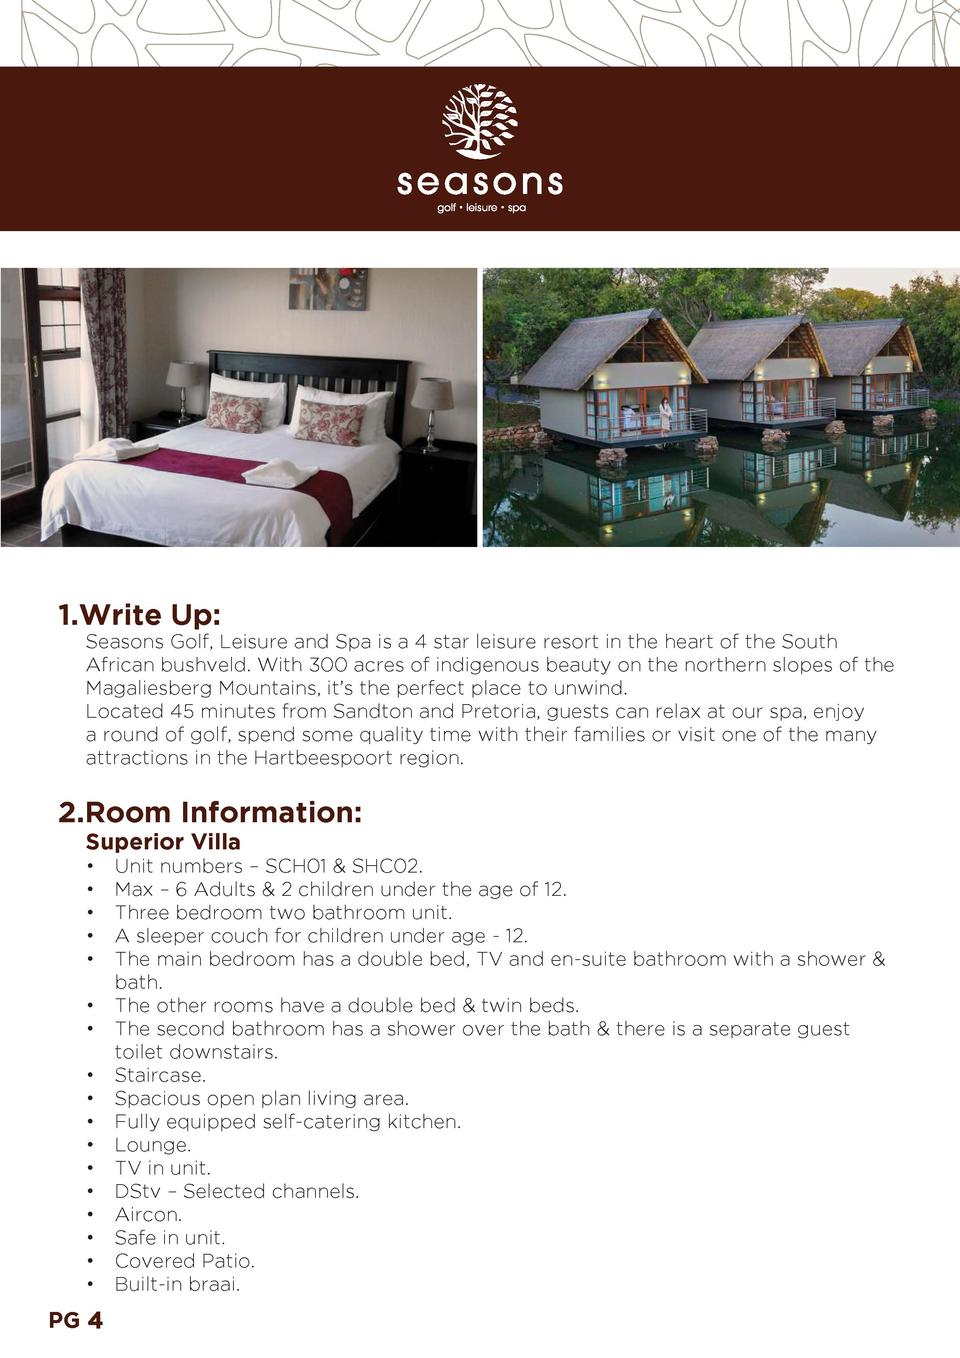 1.Write Up  Seasons Golf, Leisure and Spa is a 4 star leisure resort in the heart of the South African bushveld. With 300 ...